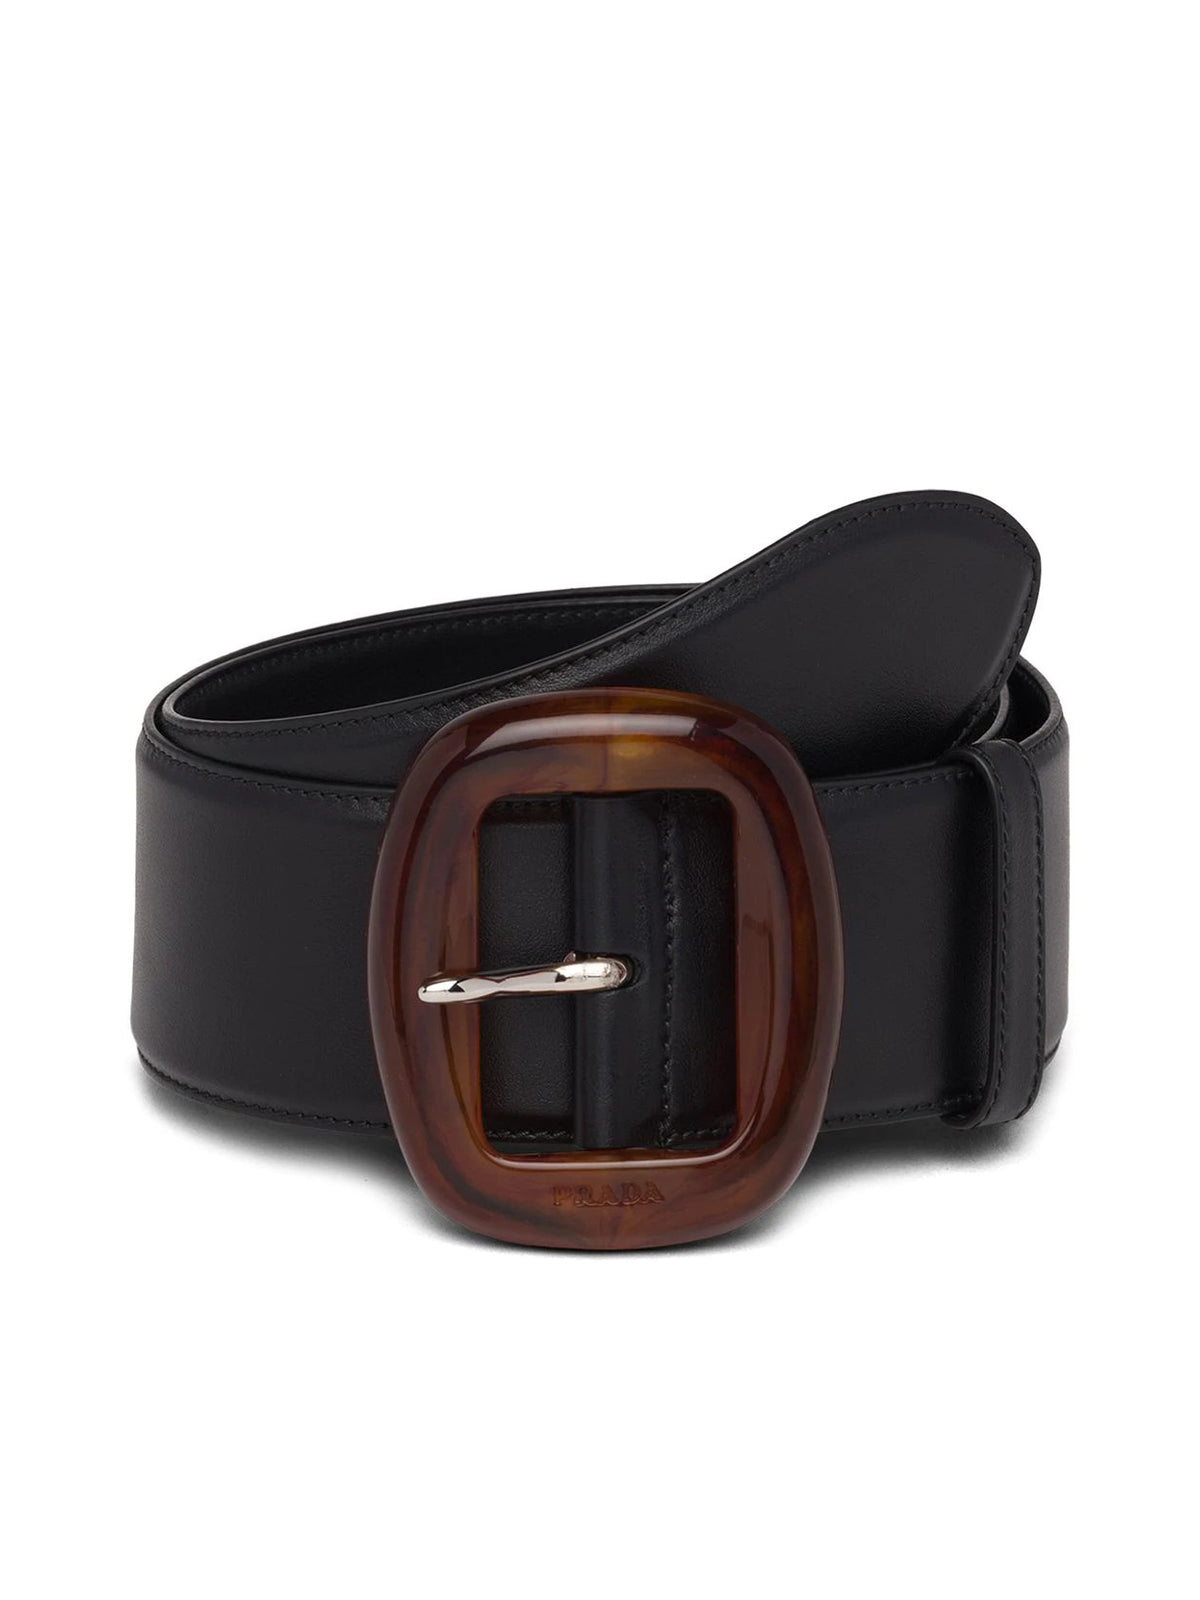 TORTOISESHELL-EFFECT BUCKLE BELT